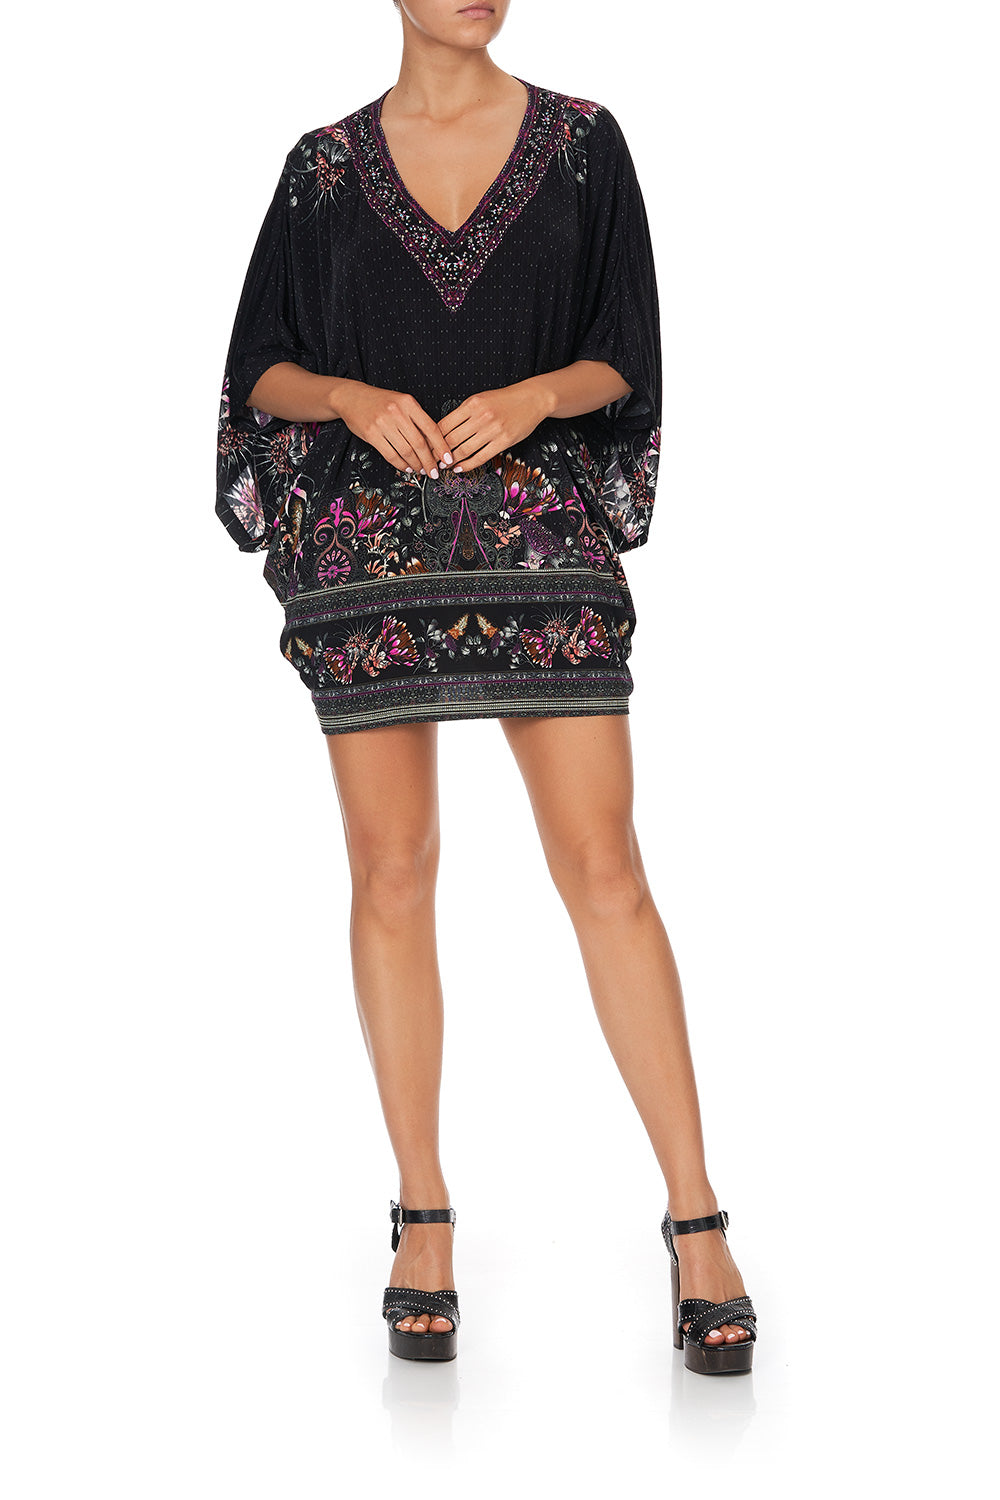 BAT SLEEVE DRESS RESTLESS NIGHTS